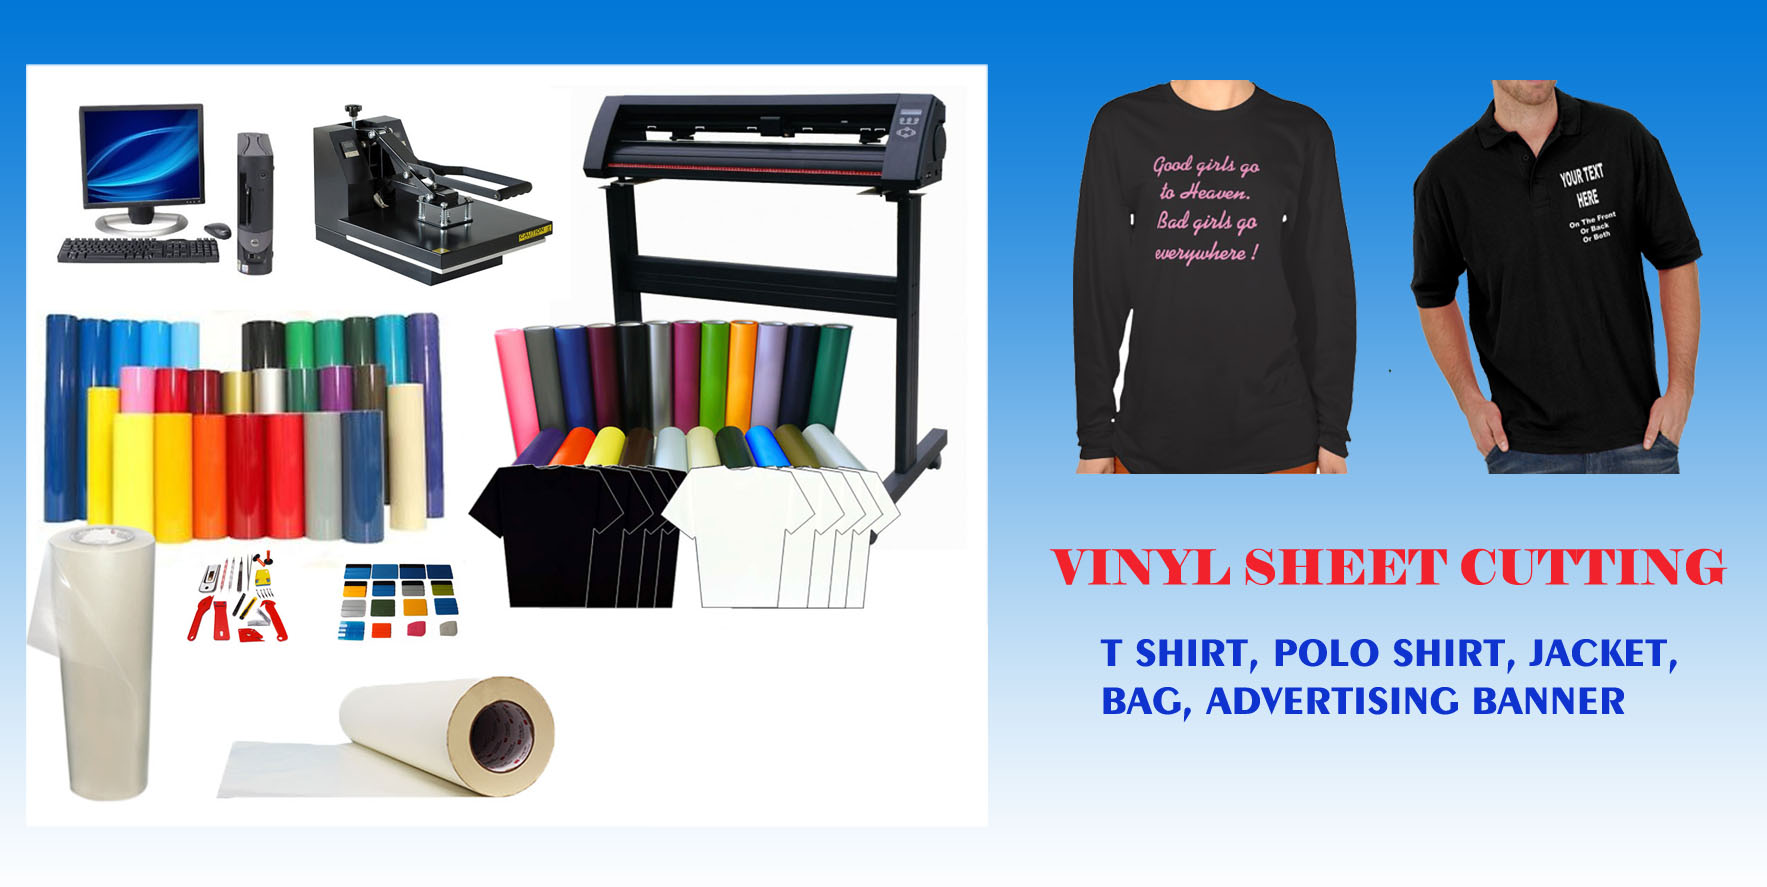 Vinyl Sheet Cutting- Click to purchase